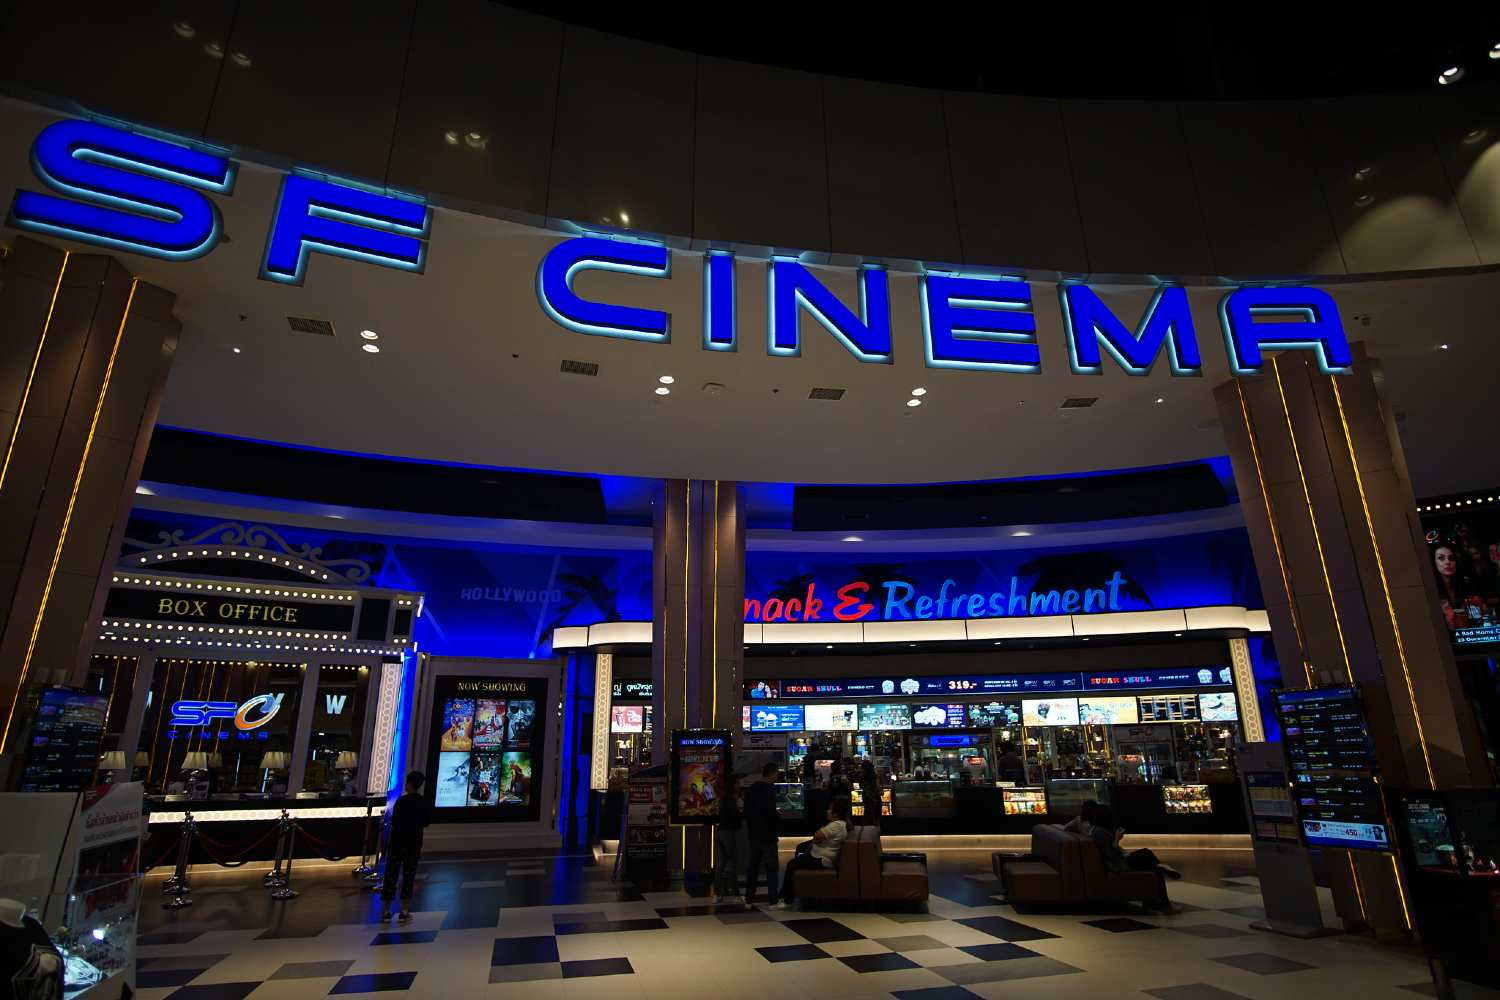 SF Cinema in Terminal 21 Bangkok